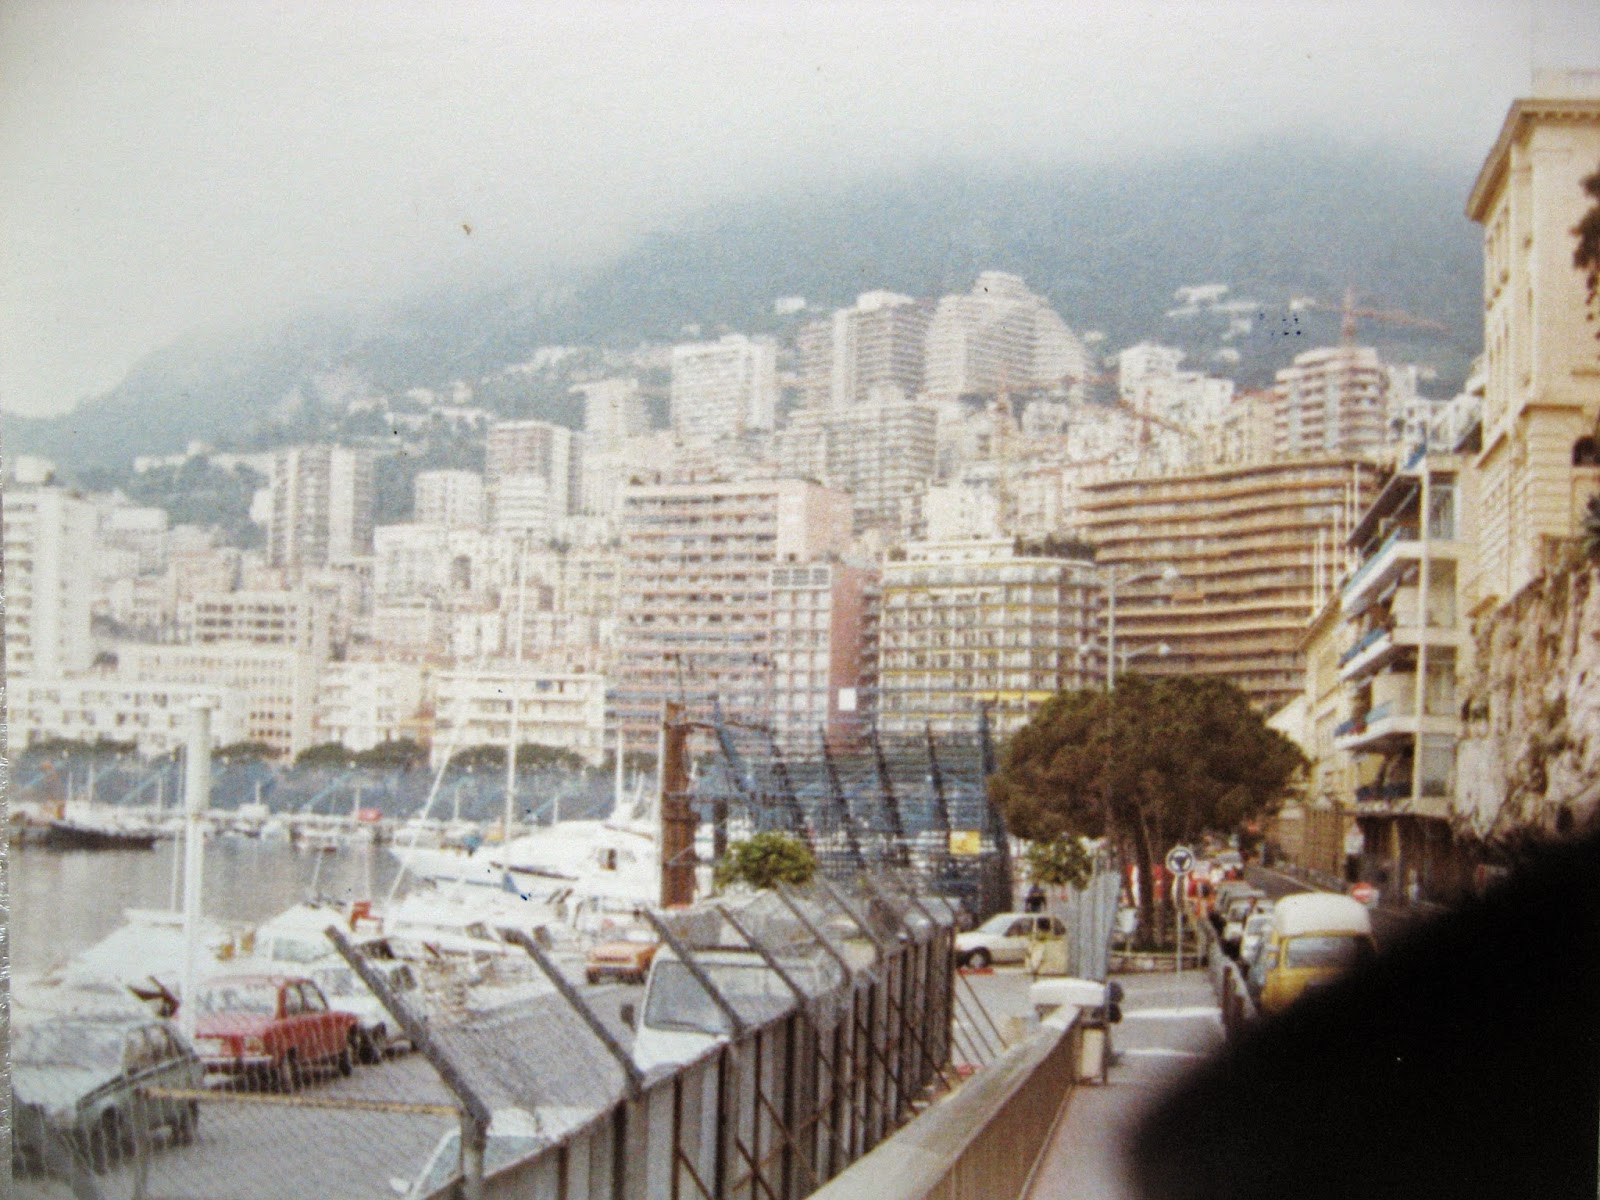 Monte Carlo, Monaco 1983 days before the Grand Prix